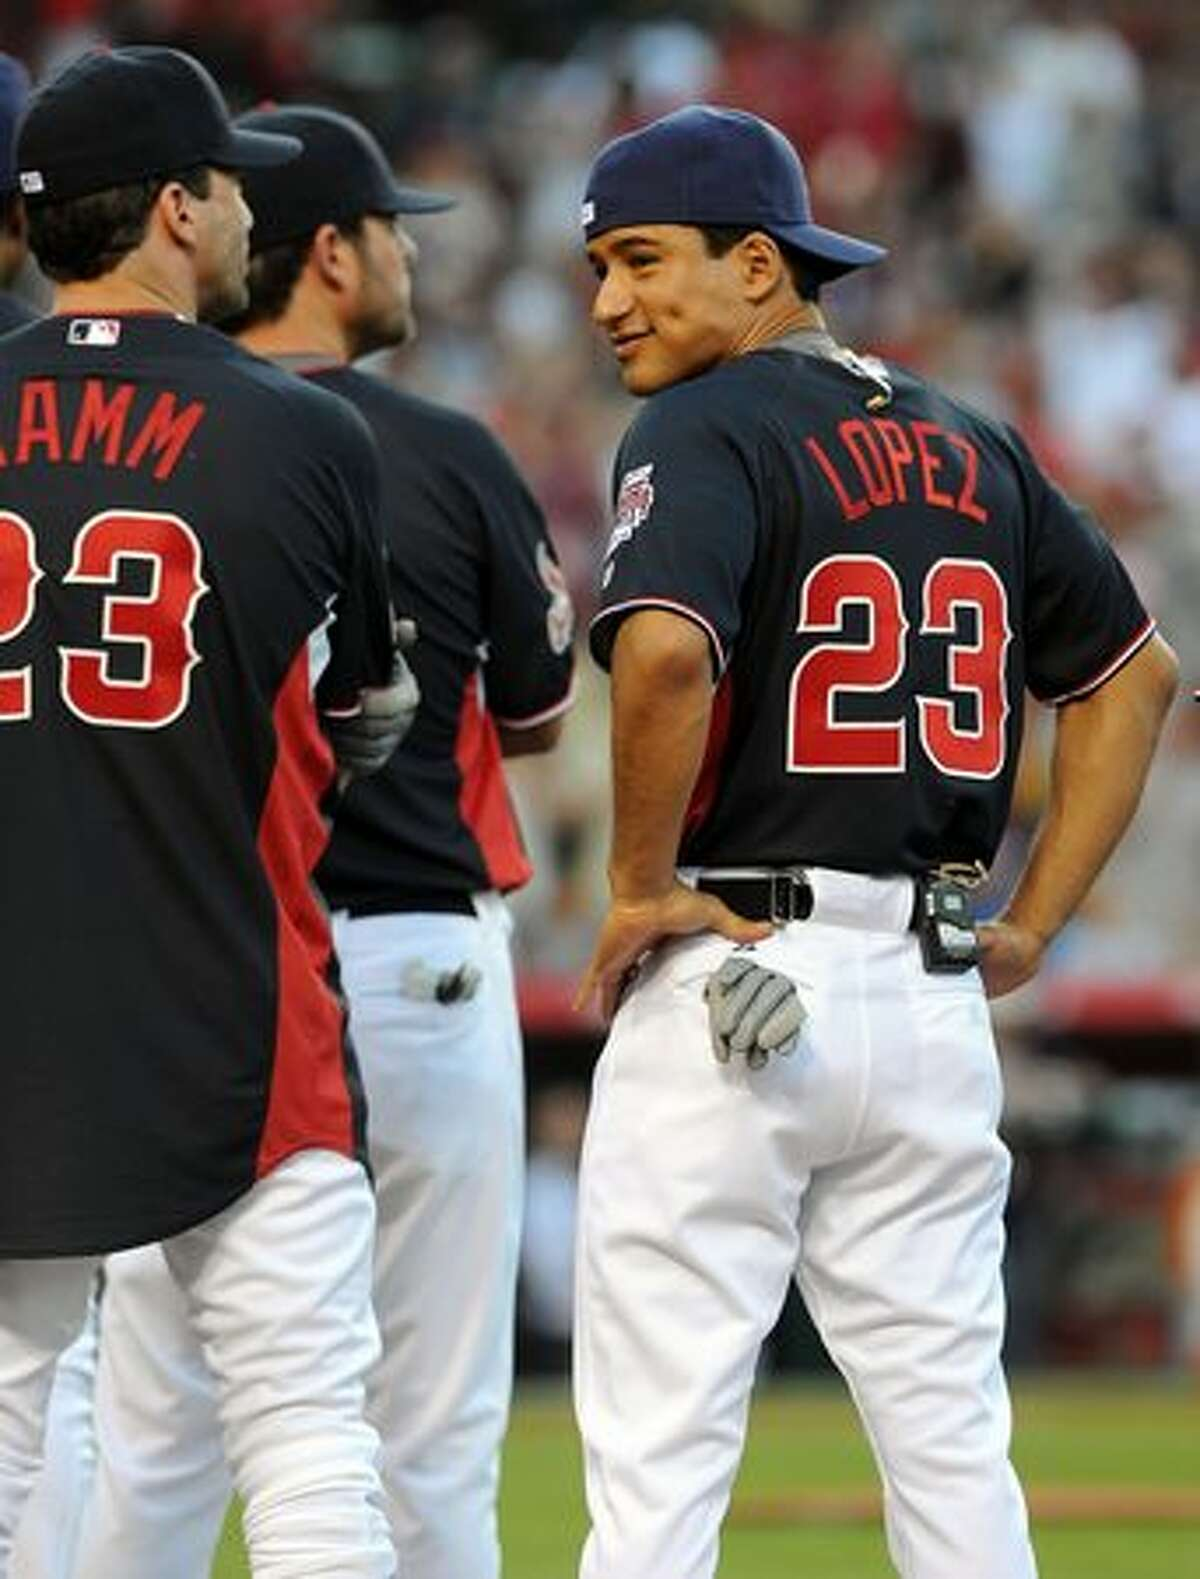 TV personality Mario Lopez (R) looks back at actor Jon Hamm (L) during the MLB All Star Game Celebrity Softball Game at Angels Stadium in Anaheim, California.